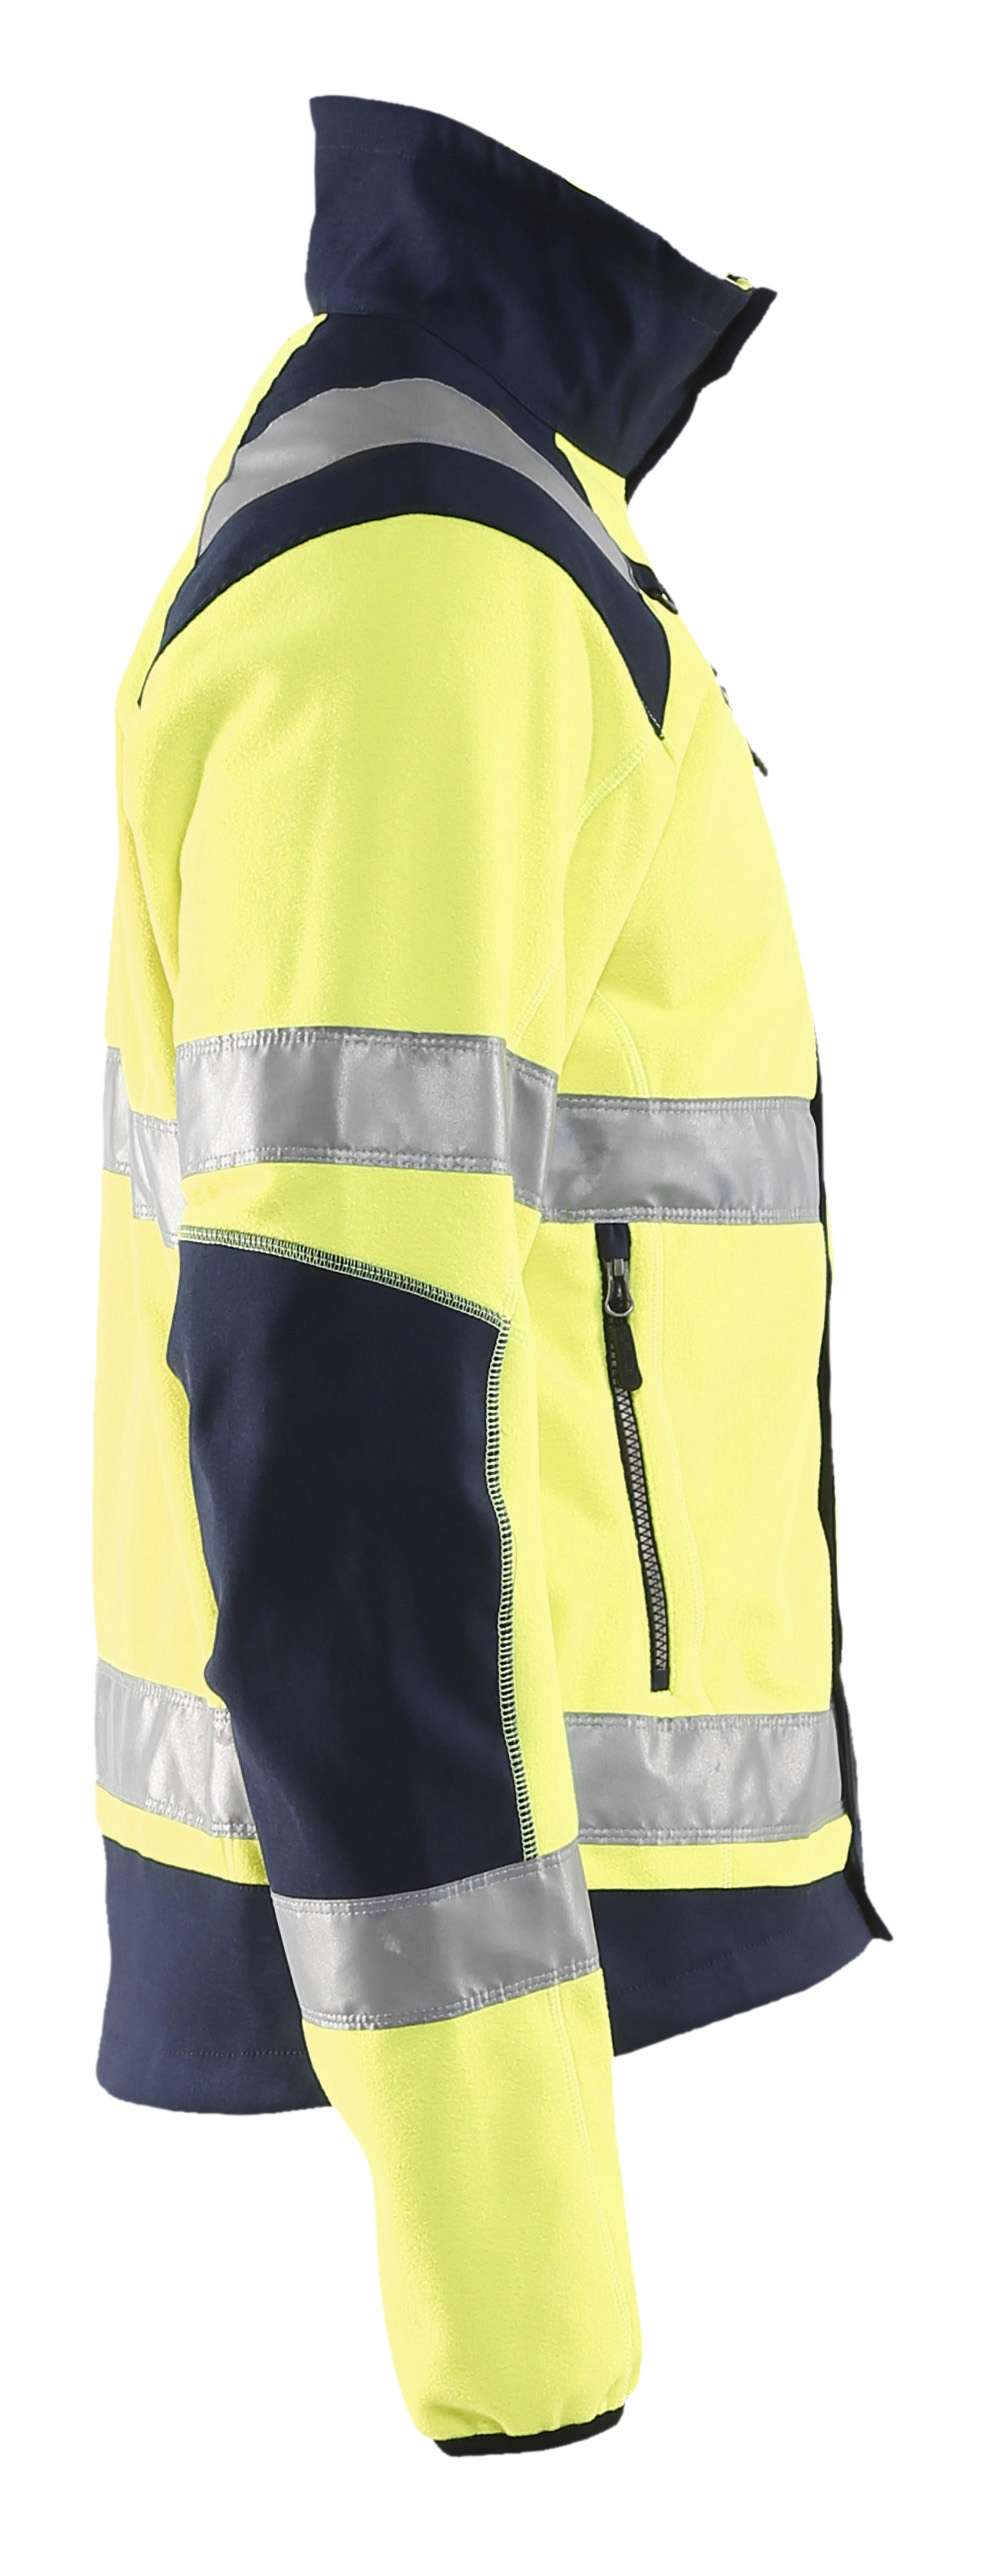 Blaklader Fleece jassen 48882524 High Vis geel-marineblauw(3389)